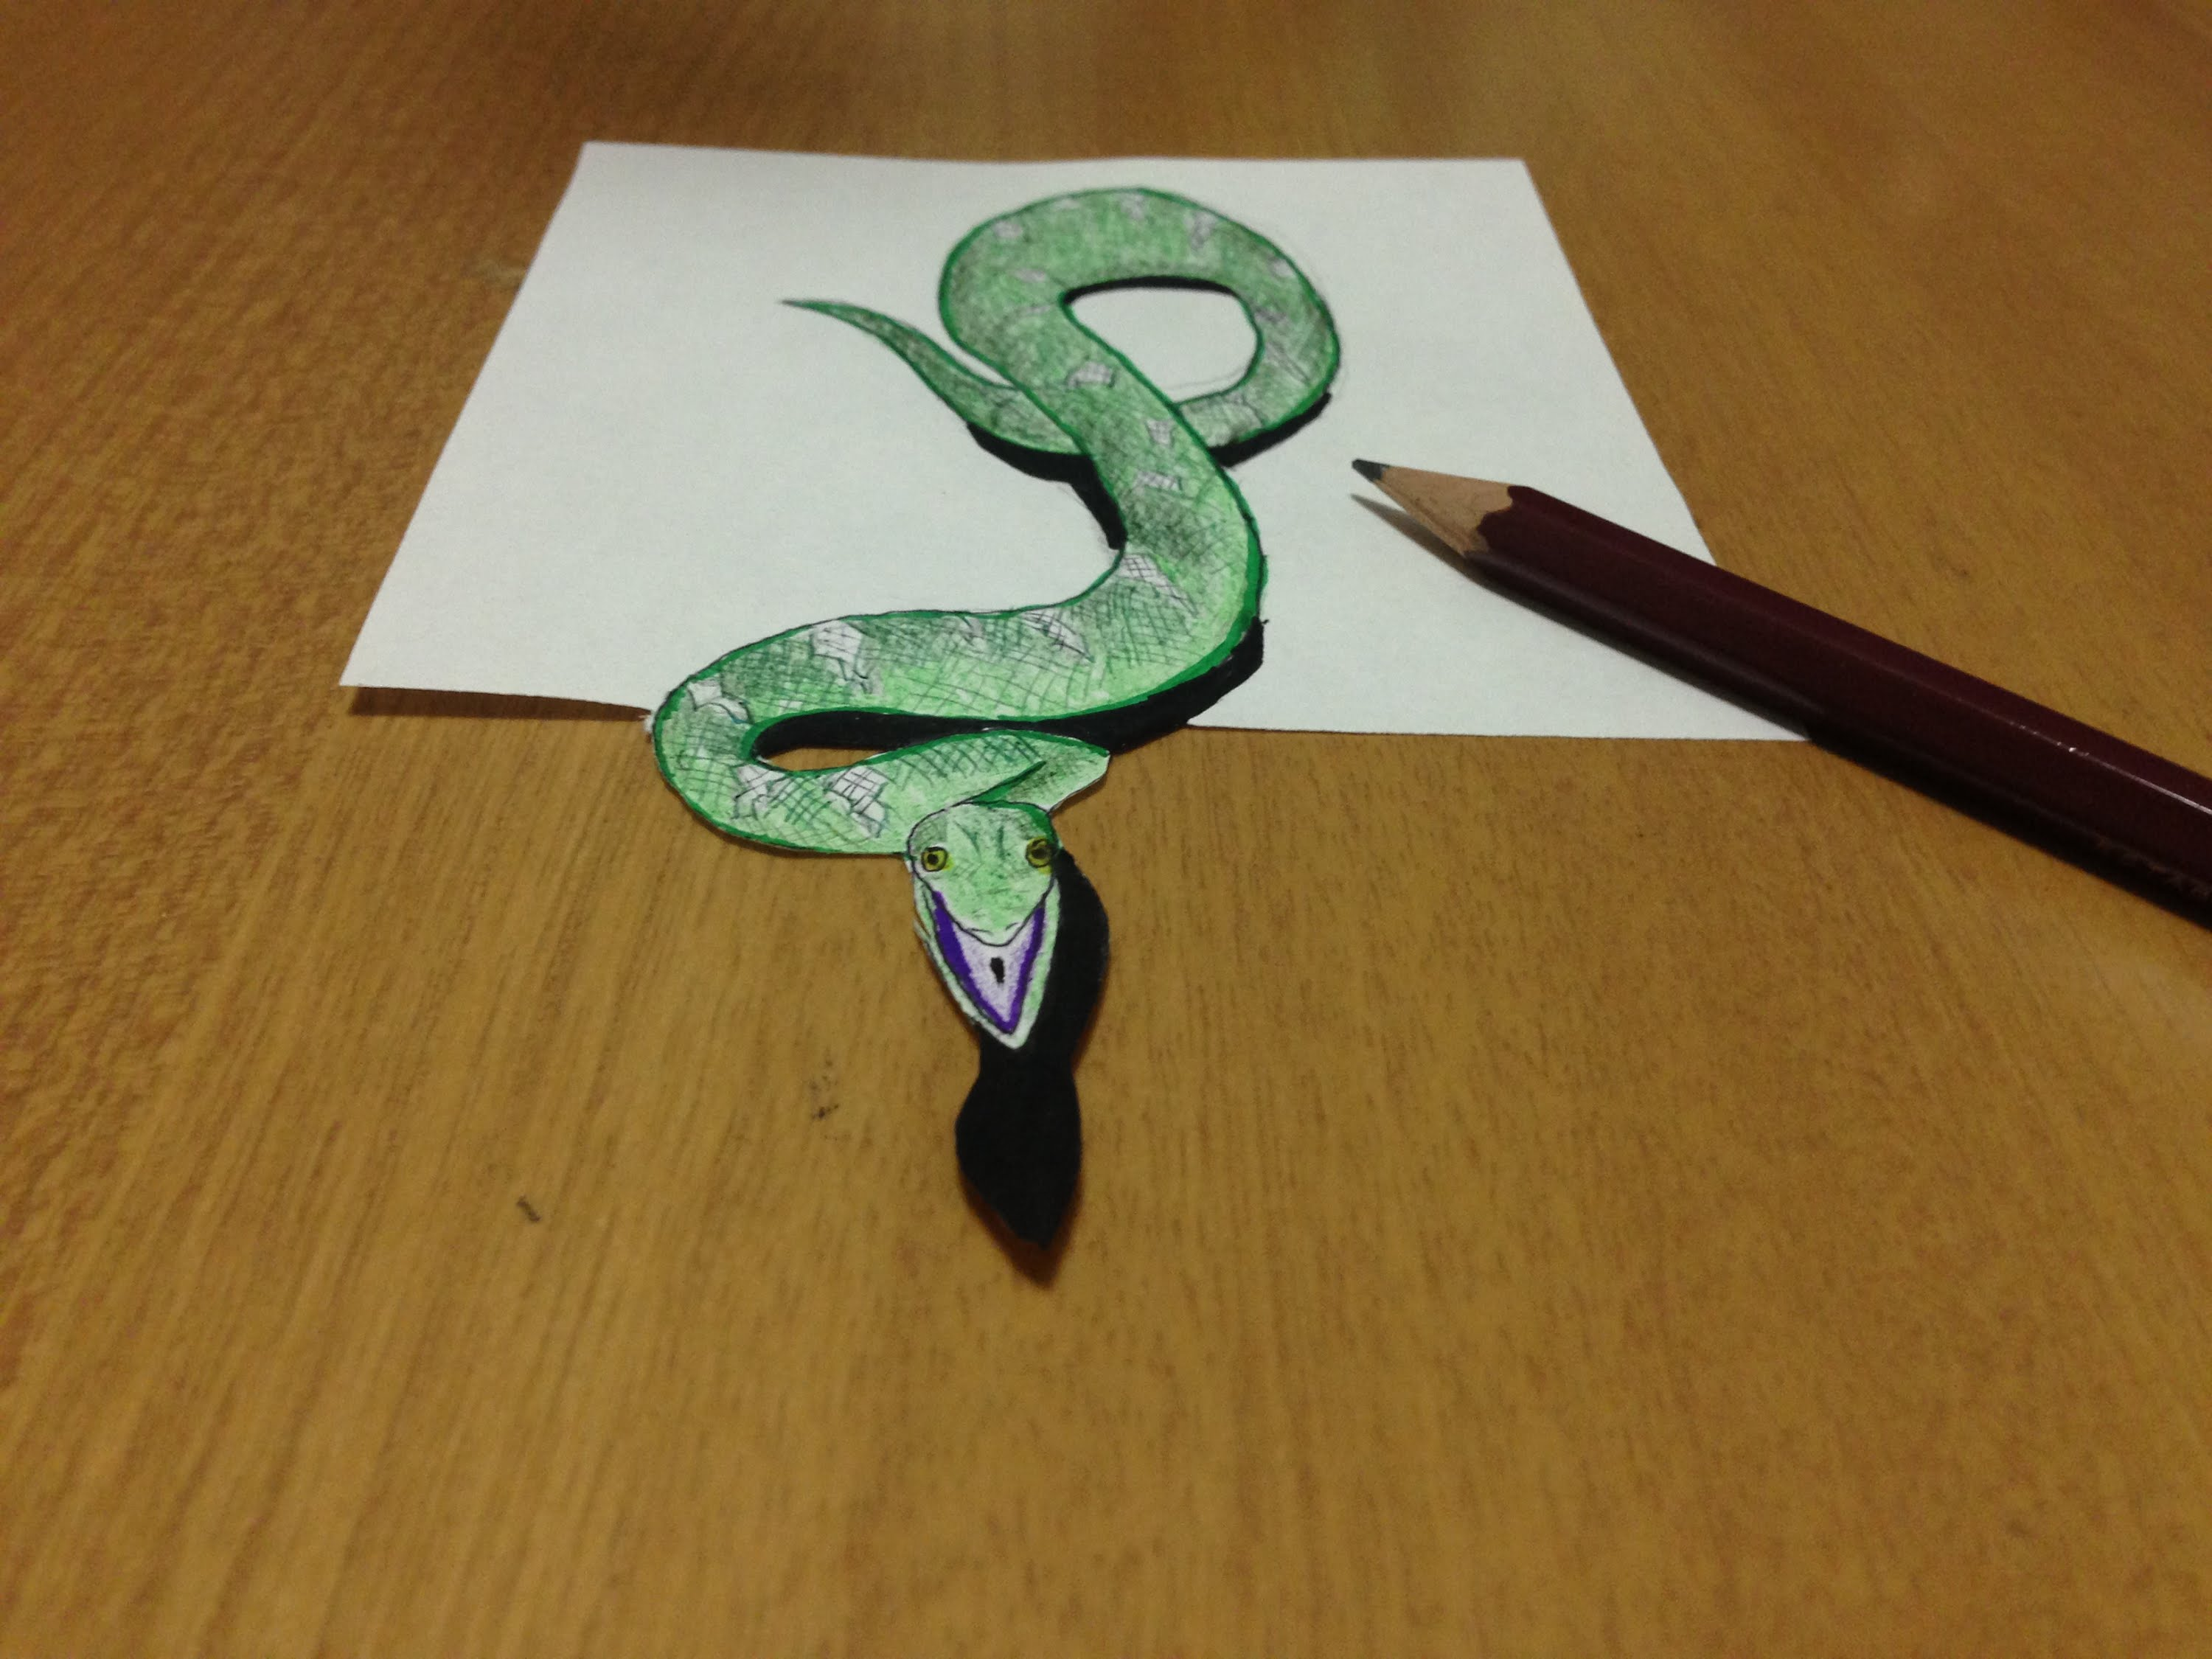 Drawn 3d art magic YouTube Drawing Snake Freehand 3D